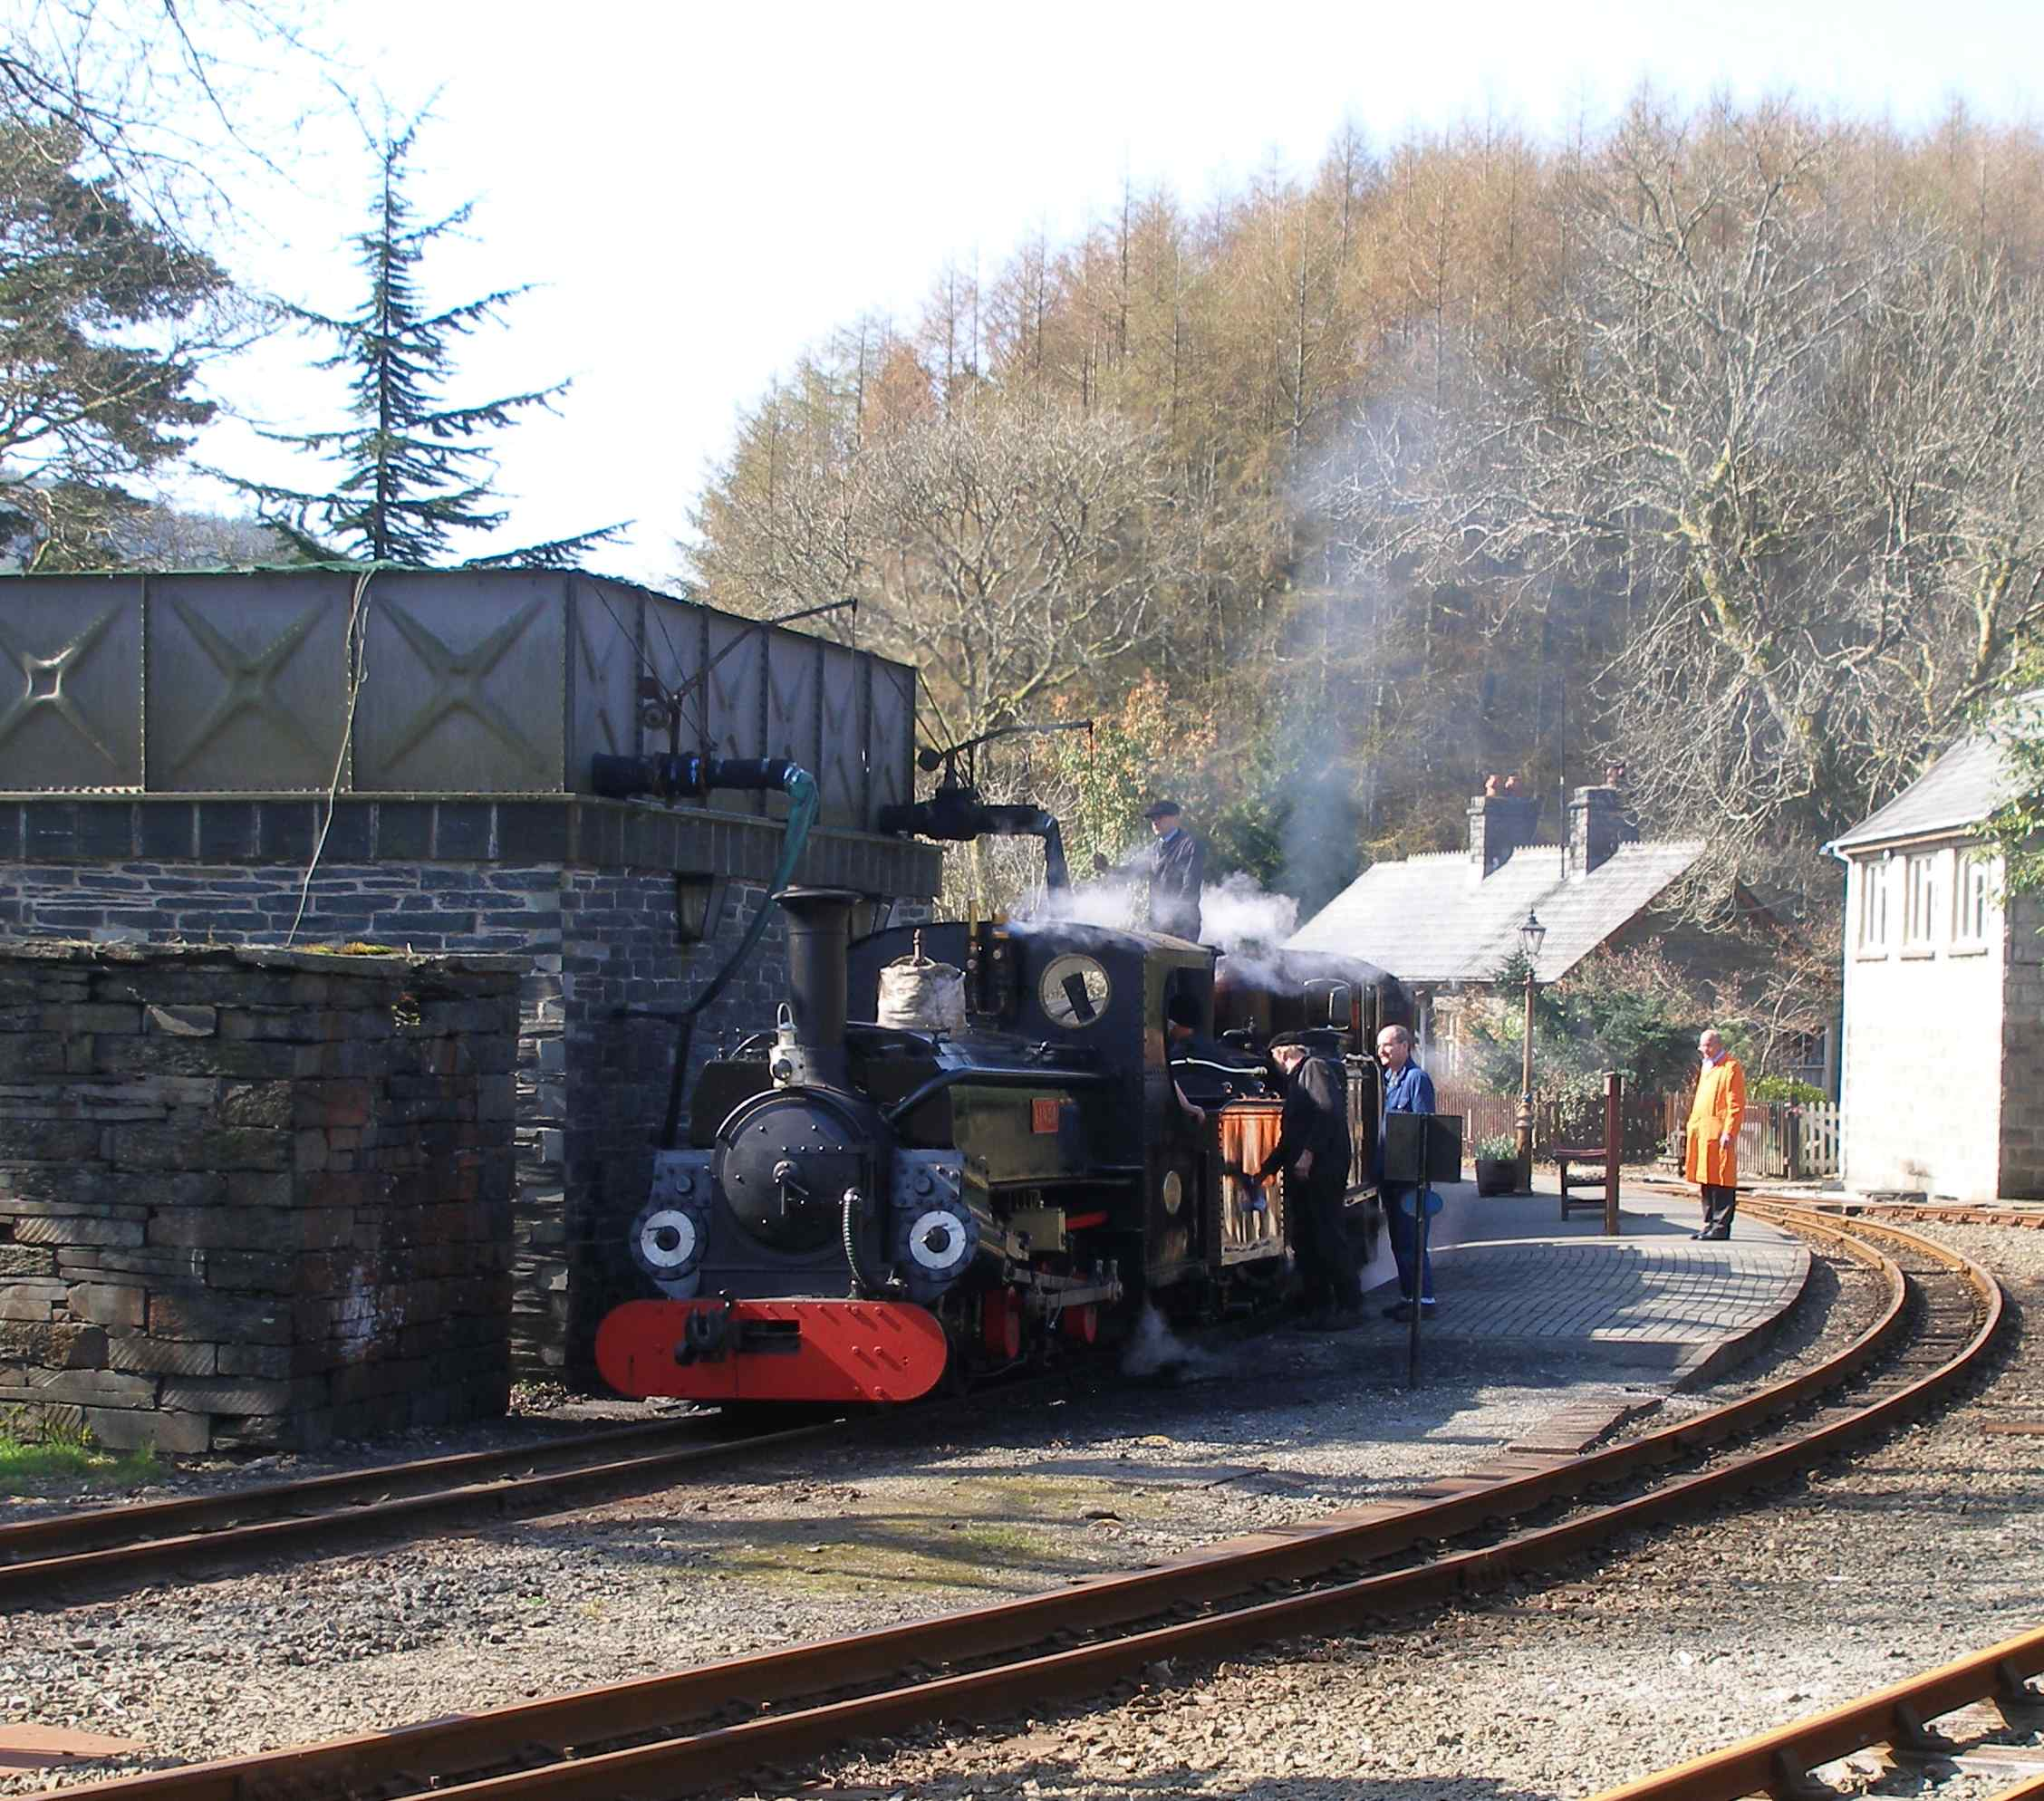 'Merddin Emrys' and 'Linda' stand at the water tank at Tan-y-Bwlch. The driver can be seen in the act of removing the Lancashire & Yorkshire Railway badge from the tender (shame!). This reflected the origins of the restoration team, who hailed from the two counties mentioned. The breeze block structure to the right was constructed as a signal box, very much in the style of one that featured in Meccano's Bayko construction set as it features domestic window frames. There was a set of GWR signal box windows that sat in the car park for some time, but were ultimately not used. The structure now houses the relays to work the automated signalling at this location.